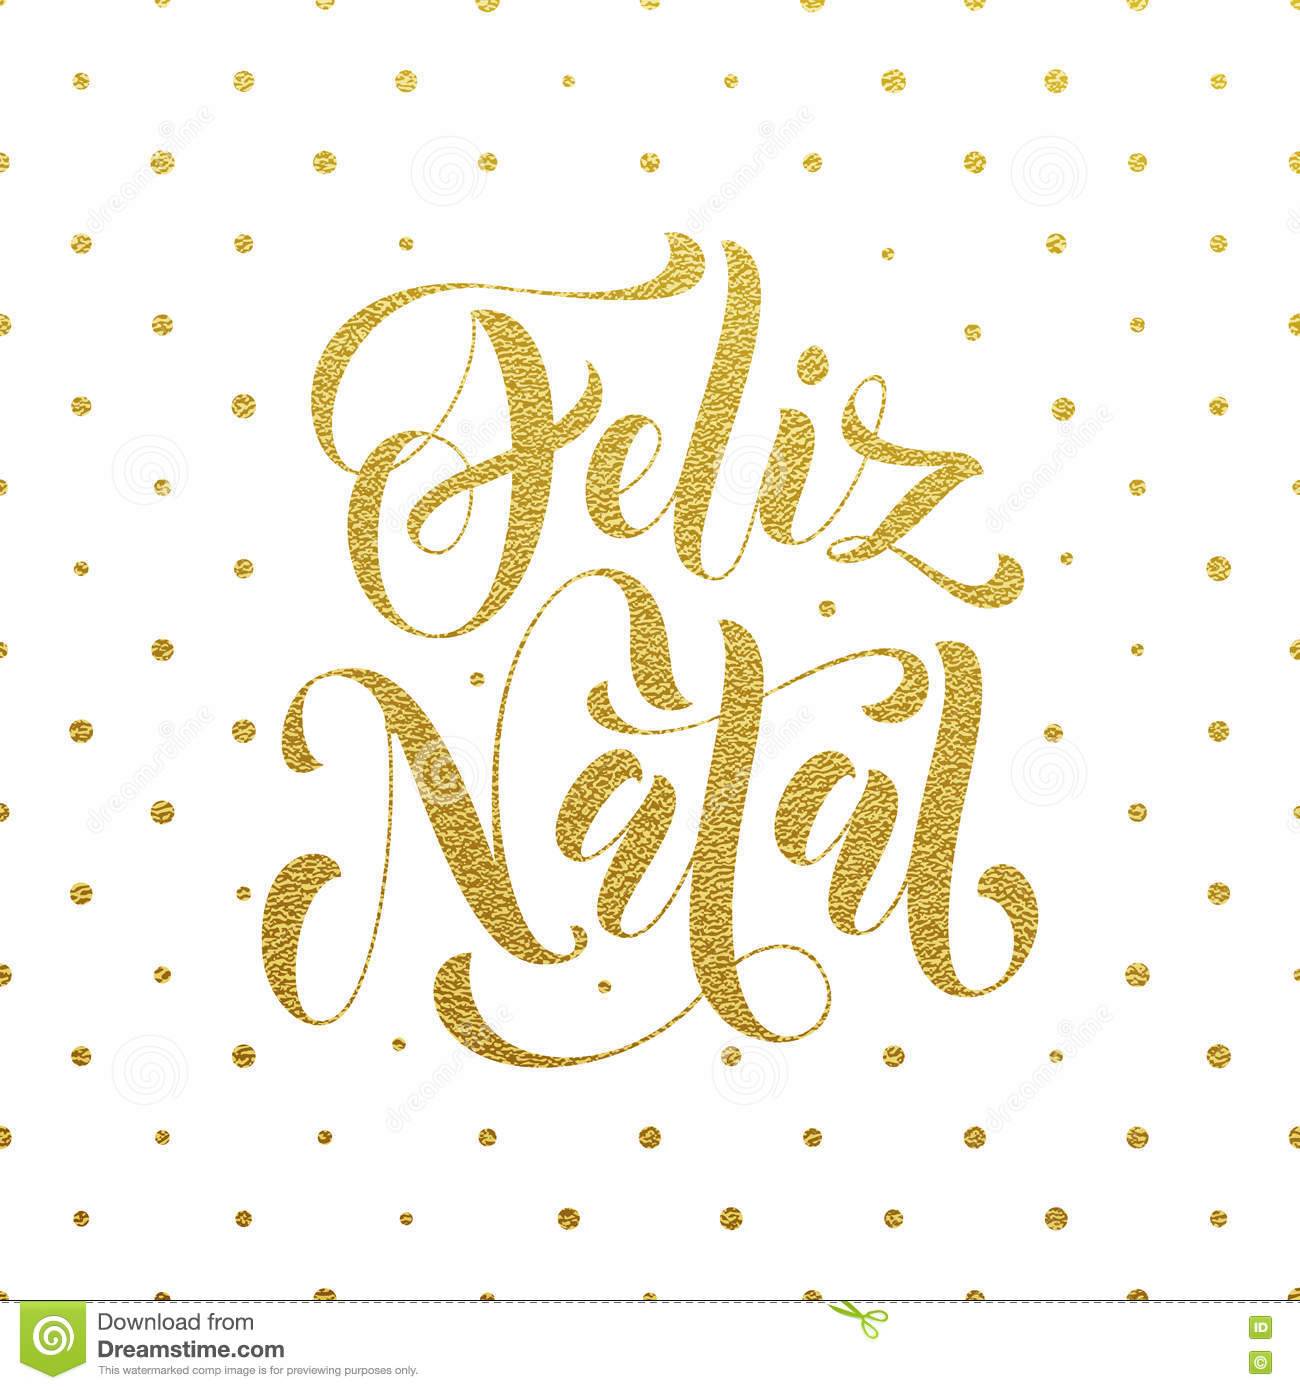 Feliz natal gold glitter greeting portuguese christmas stock feliz natal gold glitter greeting for portuguese brazilian ano novo merry christmas xmas new year holiday card vector hand drawn festive text for m4hsunfo